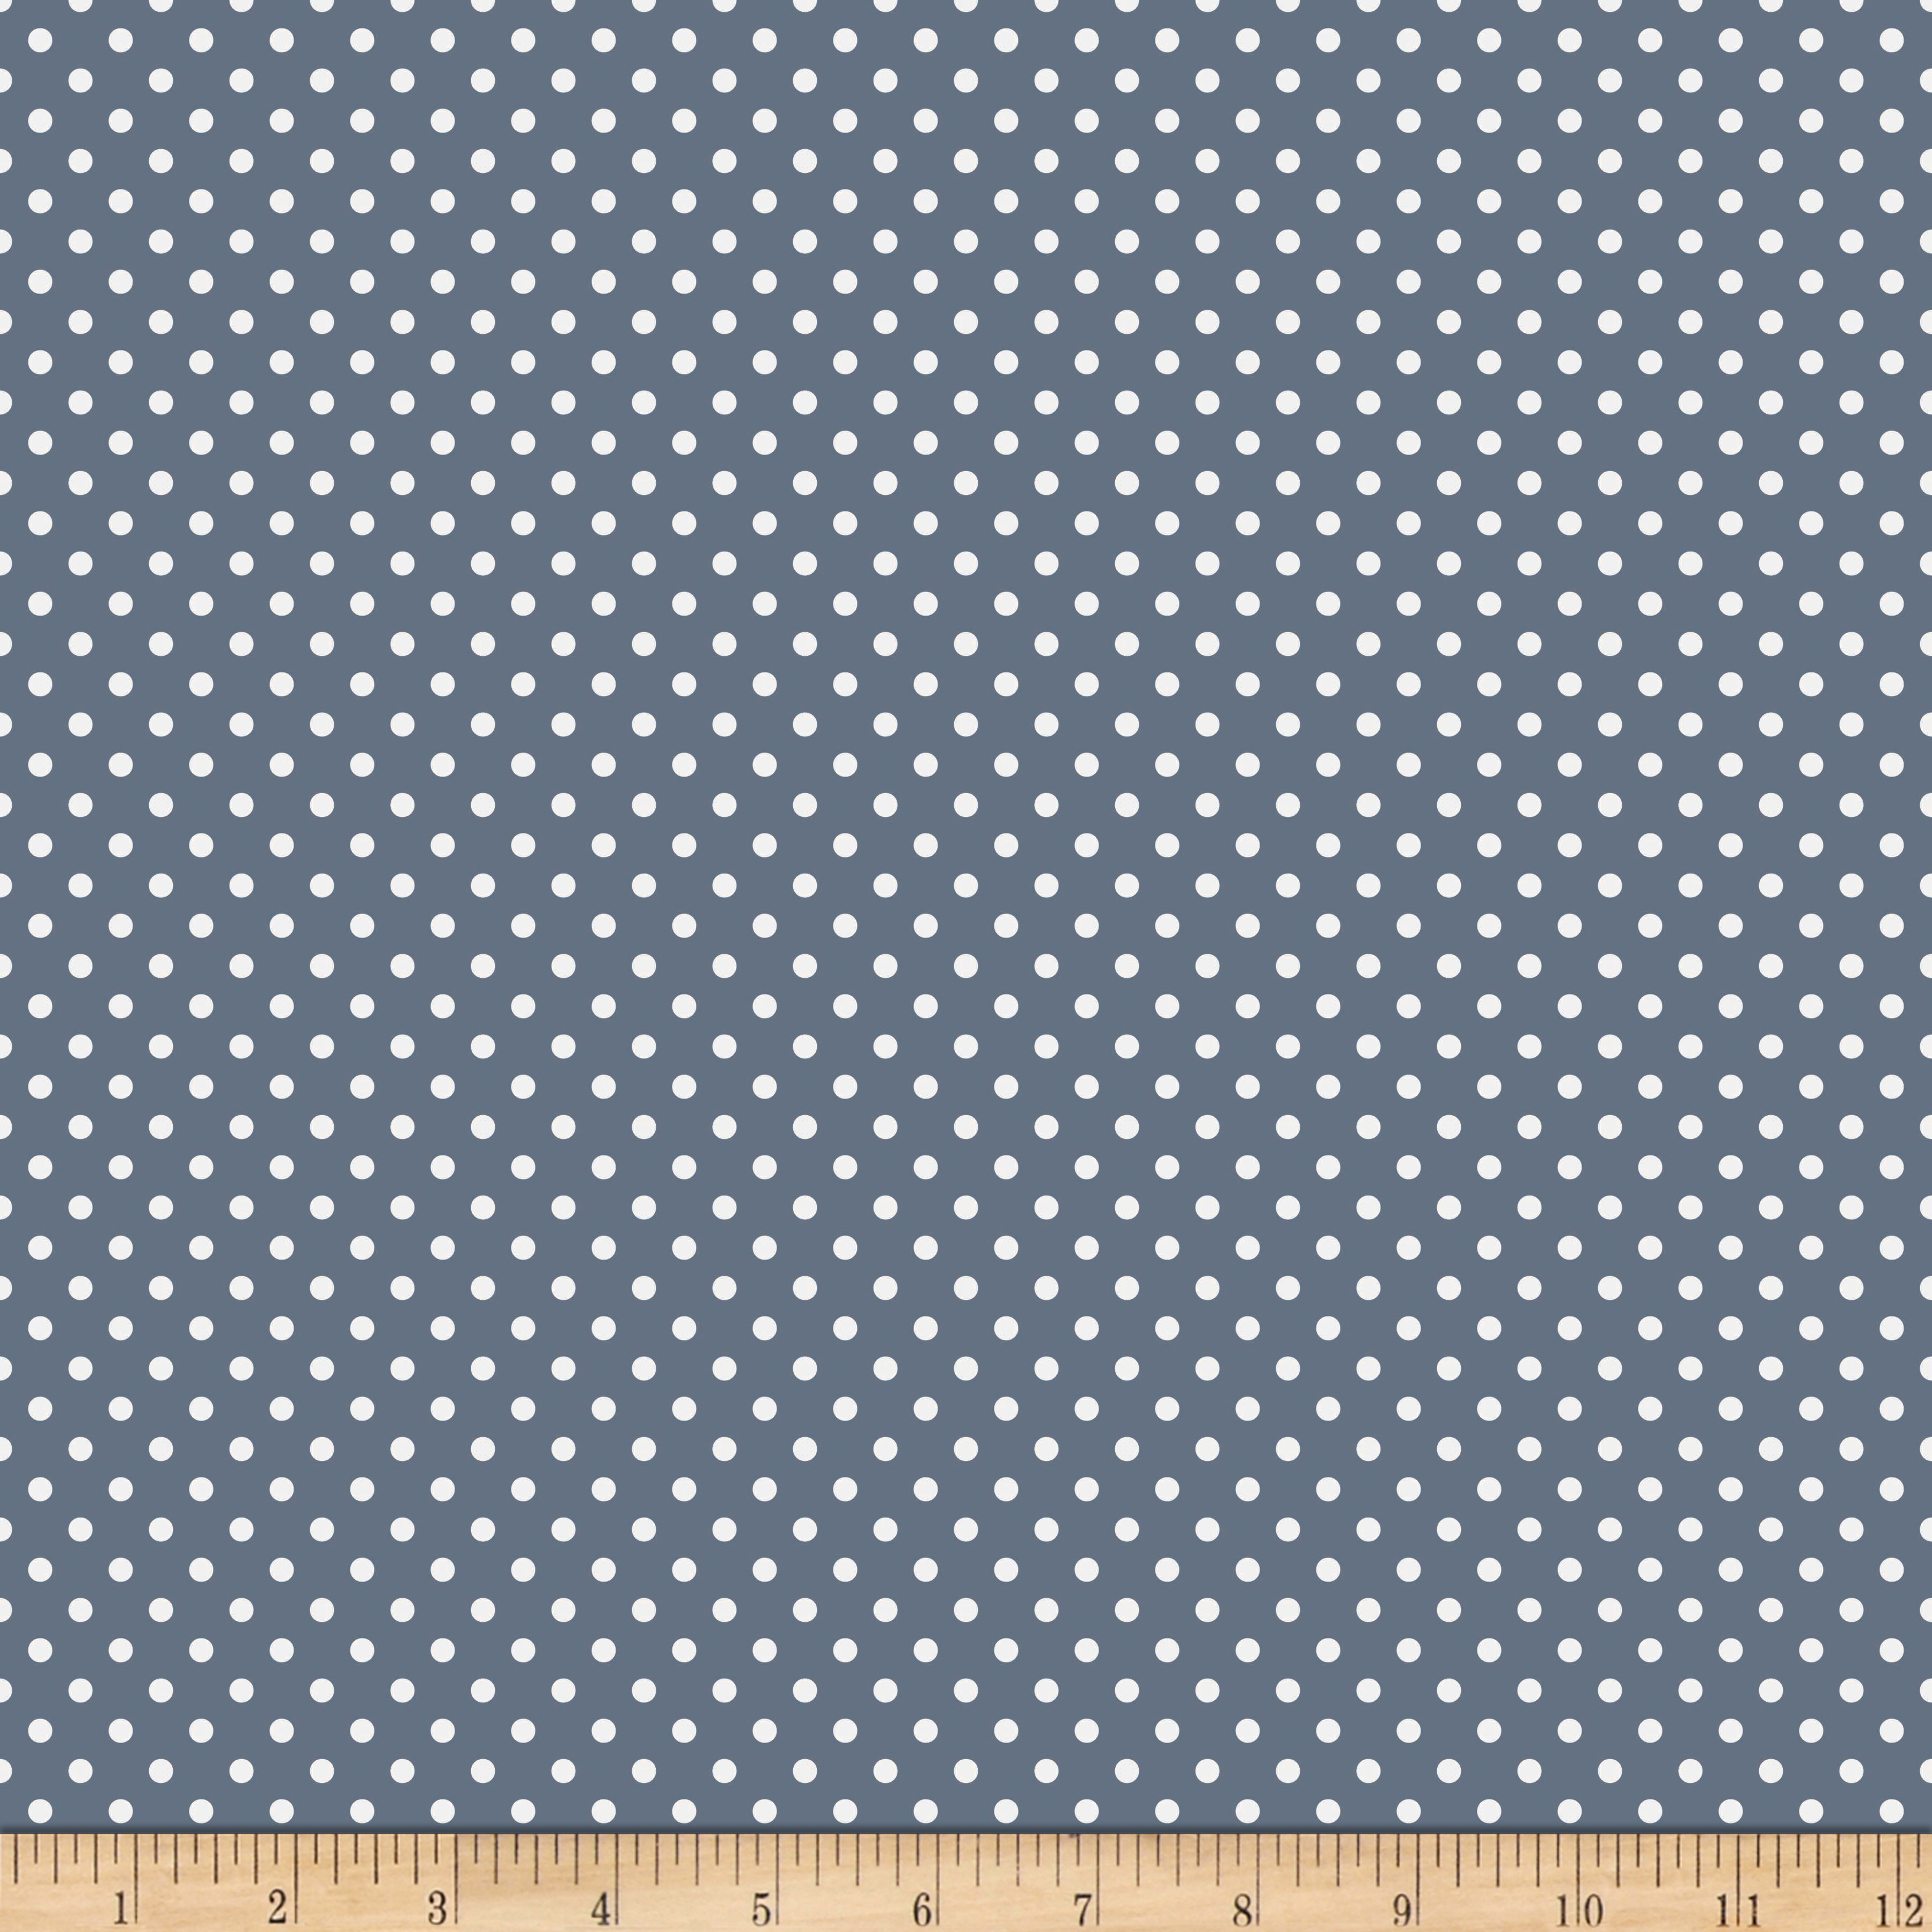 Riley Blake A Beautiful Thing Dot Navy Fabric